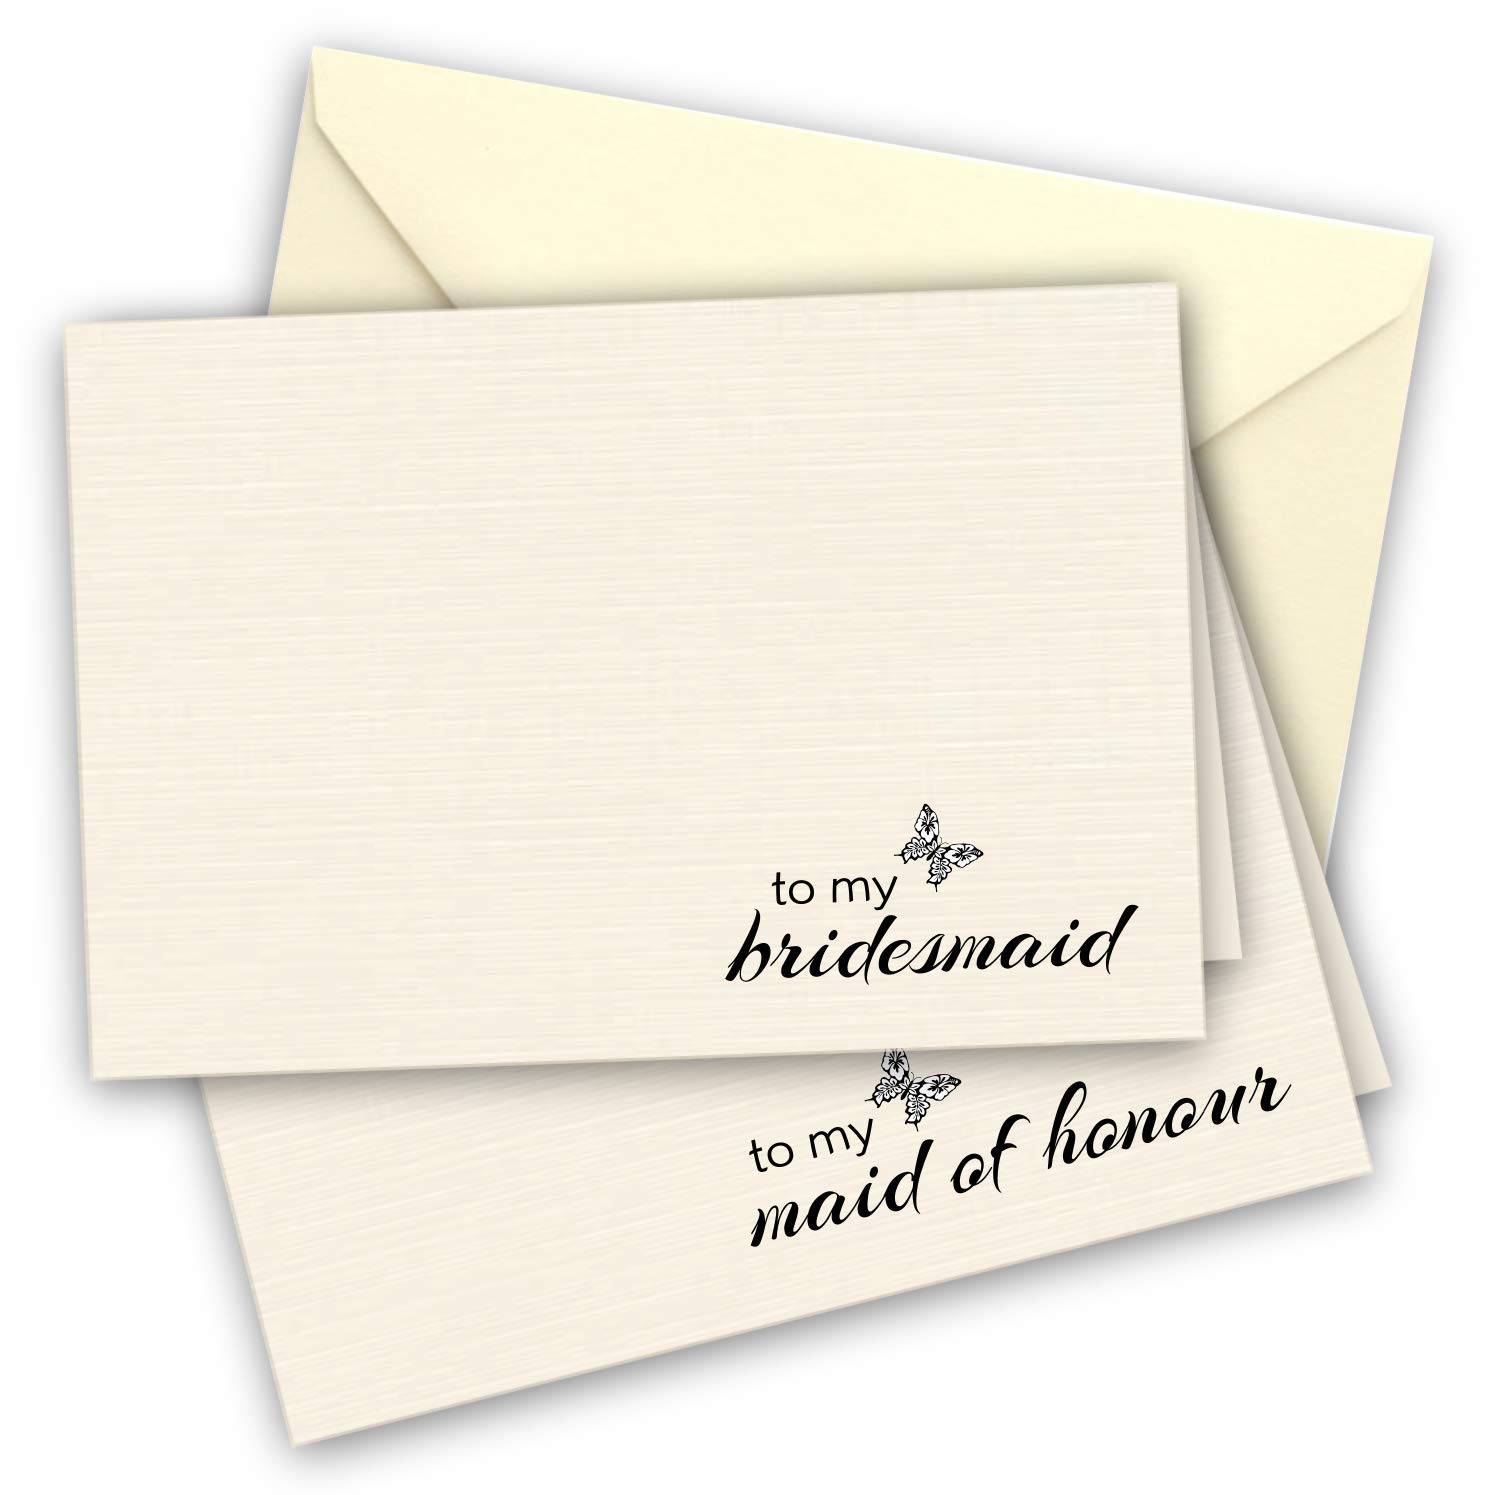 6 Ivory Bridal Thank You Note Cards to Bridesmaid x 5 and to Maid of honour x 1 with ivory envelopes